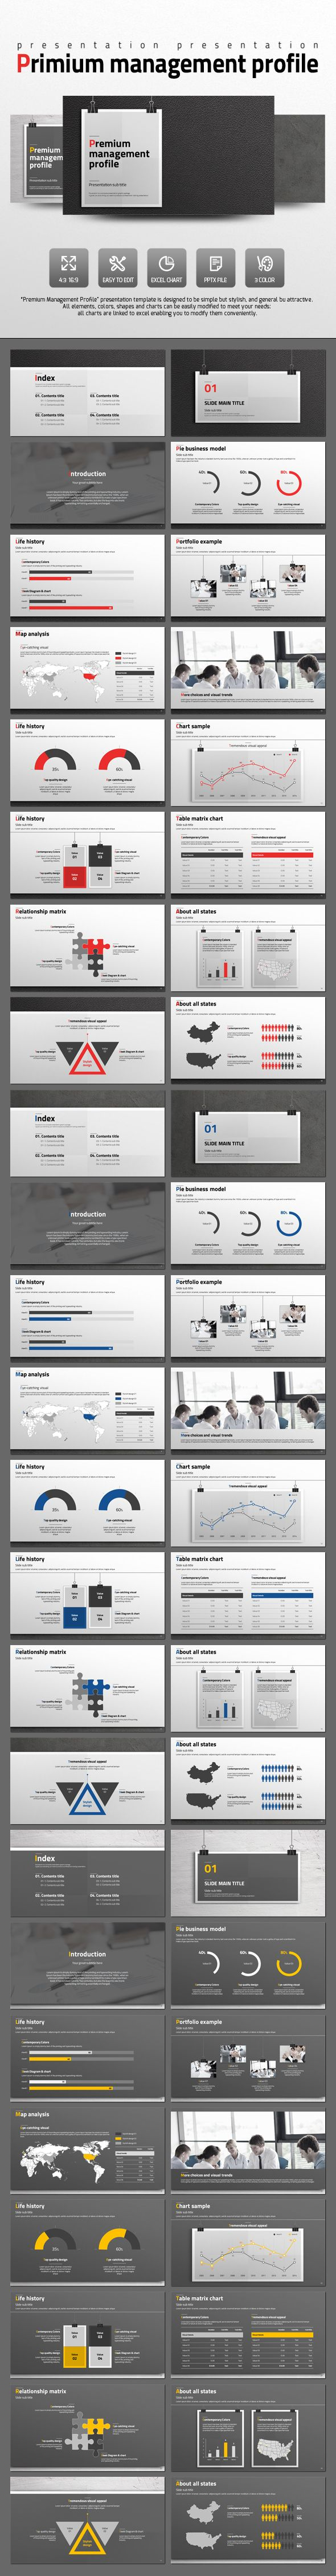 Premium Management Profile - PowerPoint Template #design #slides Download: http://graphicriver.net/item/premium-management-profile/14096673?ref=ksioks